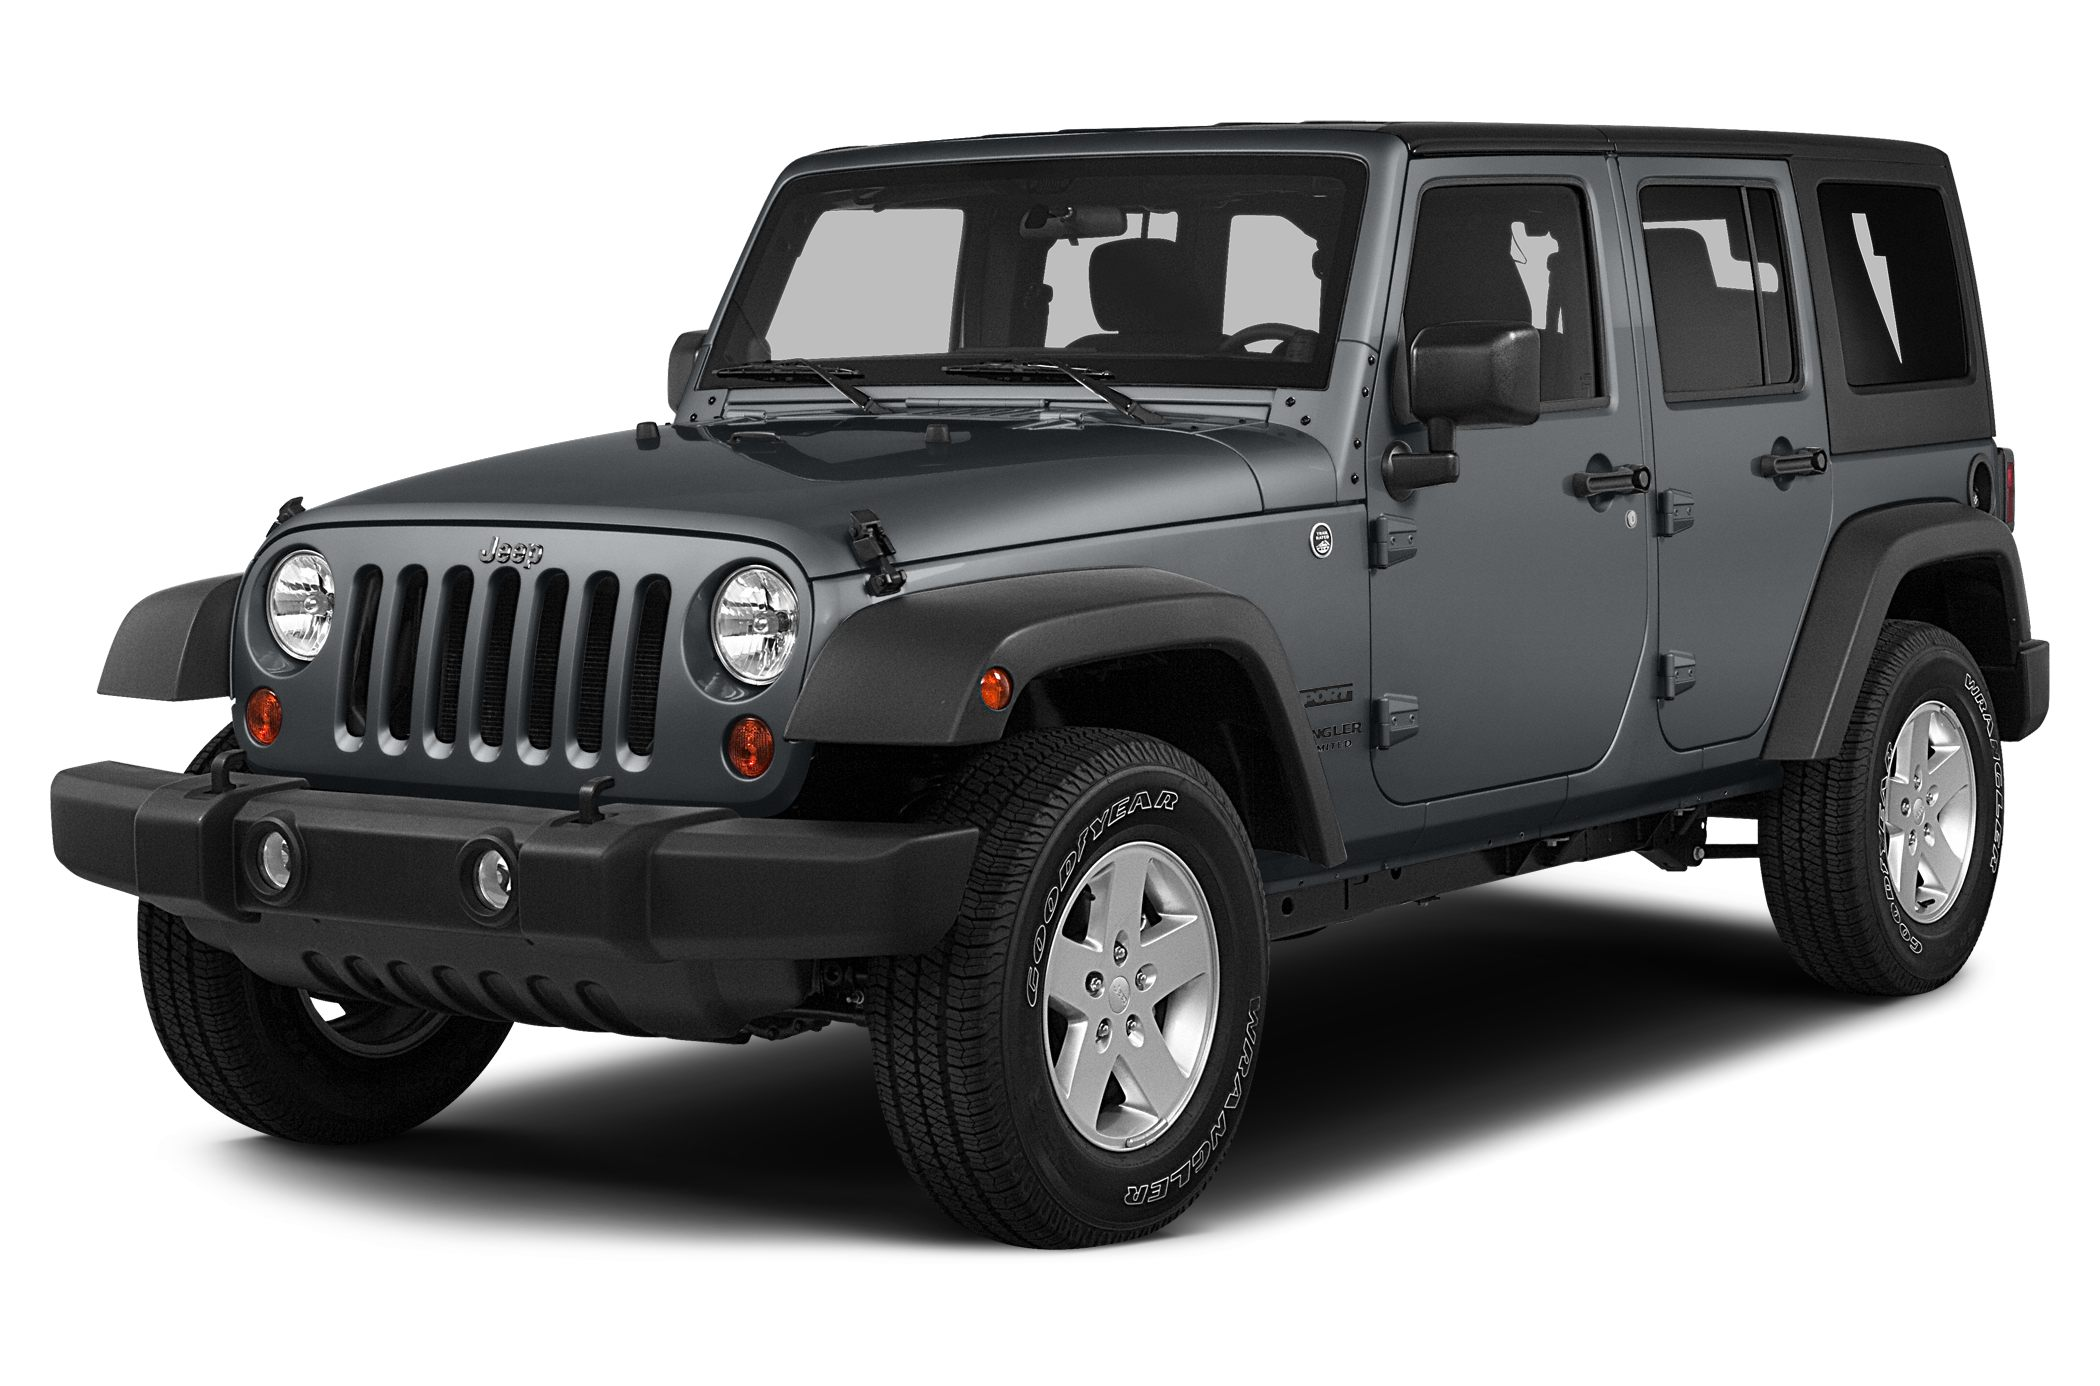 2013 Jeep Wrangler Unlimited Sport SUV for sale in Ocoee for $27,500 with 34,394 miles.